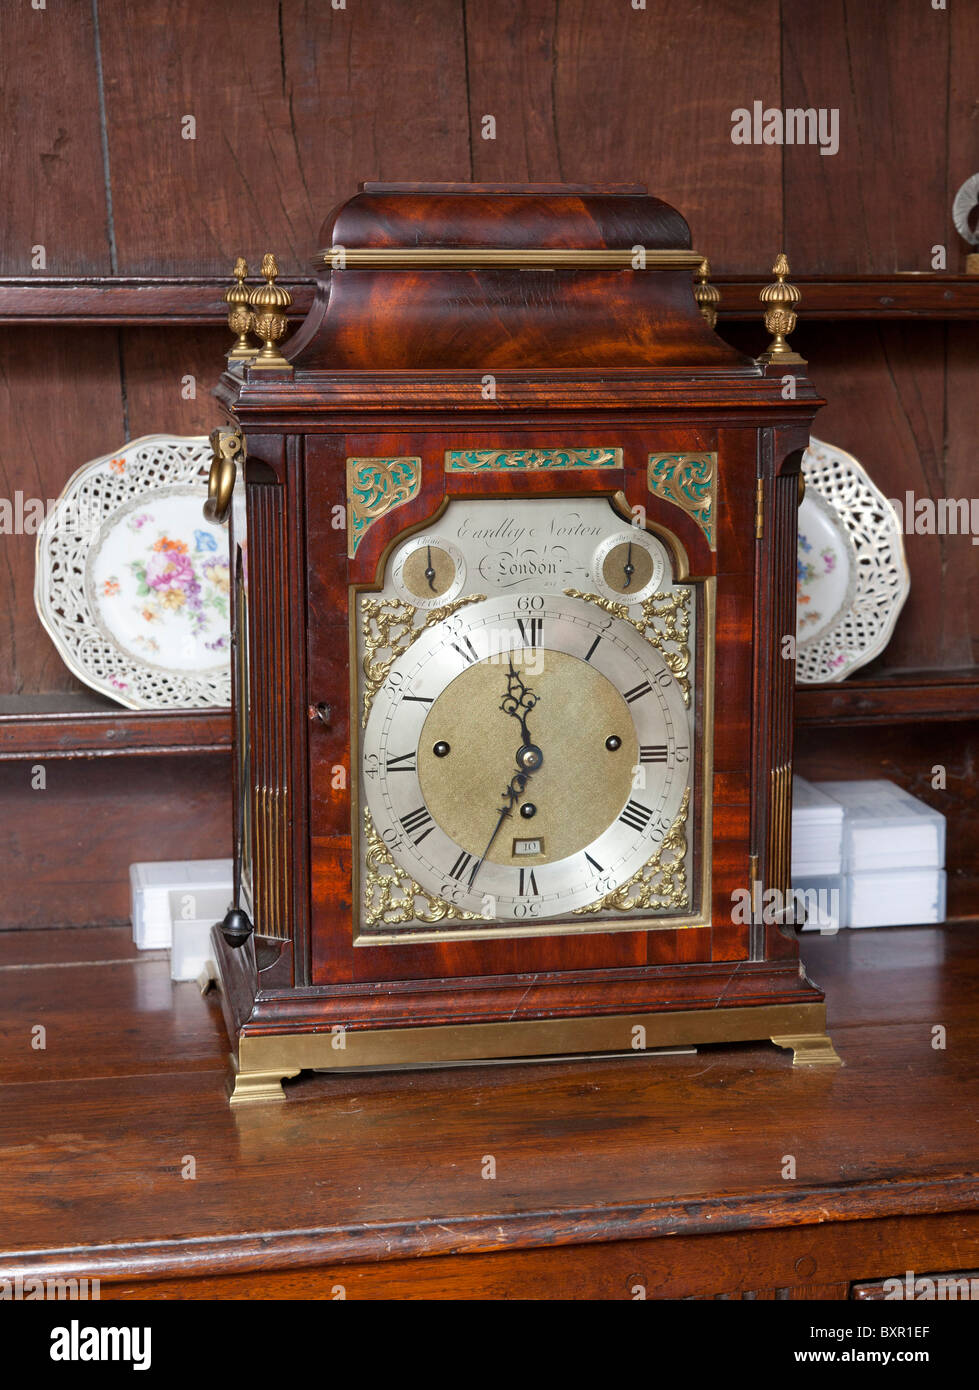 Eardley Norton mahogany musical bracket clock made around 1770 in London - Stock Image